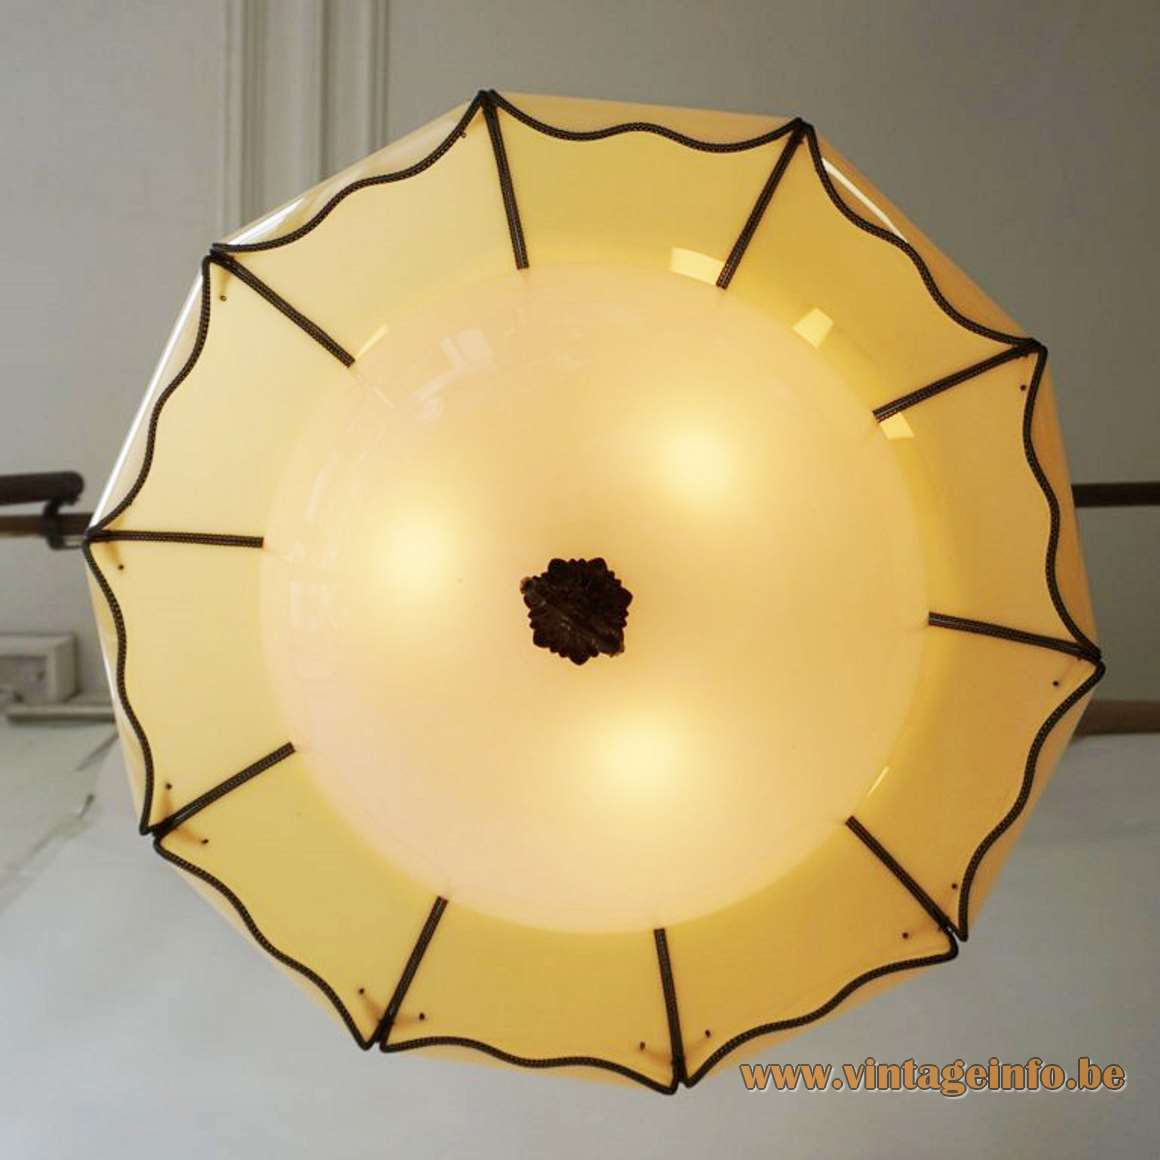 Lotus flower petal pendant lamp swag light USA mid-century modern yellow & white acrylic brass 1960s 1950s MCM